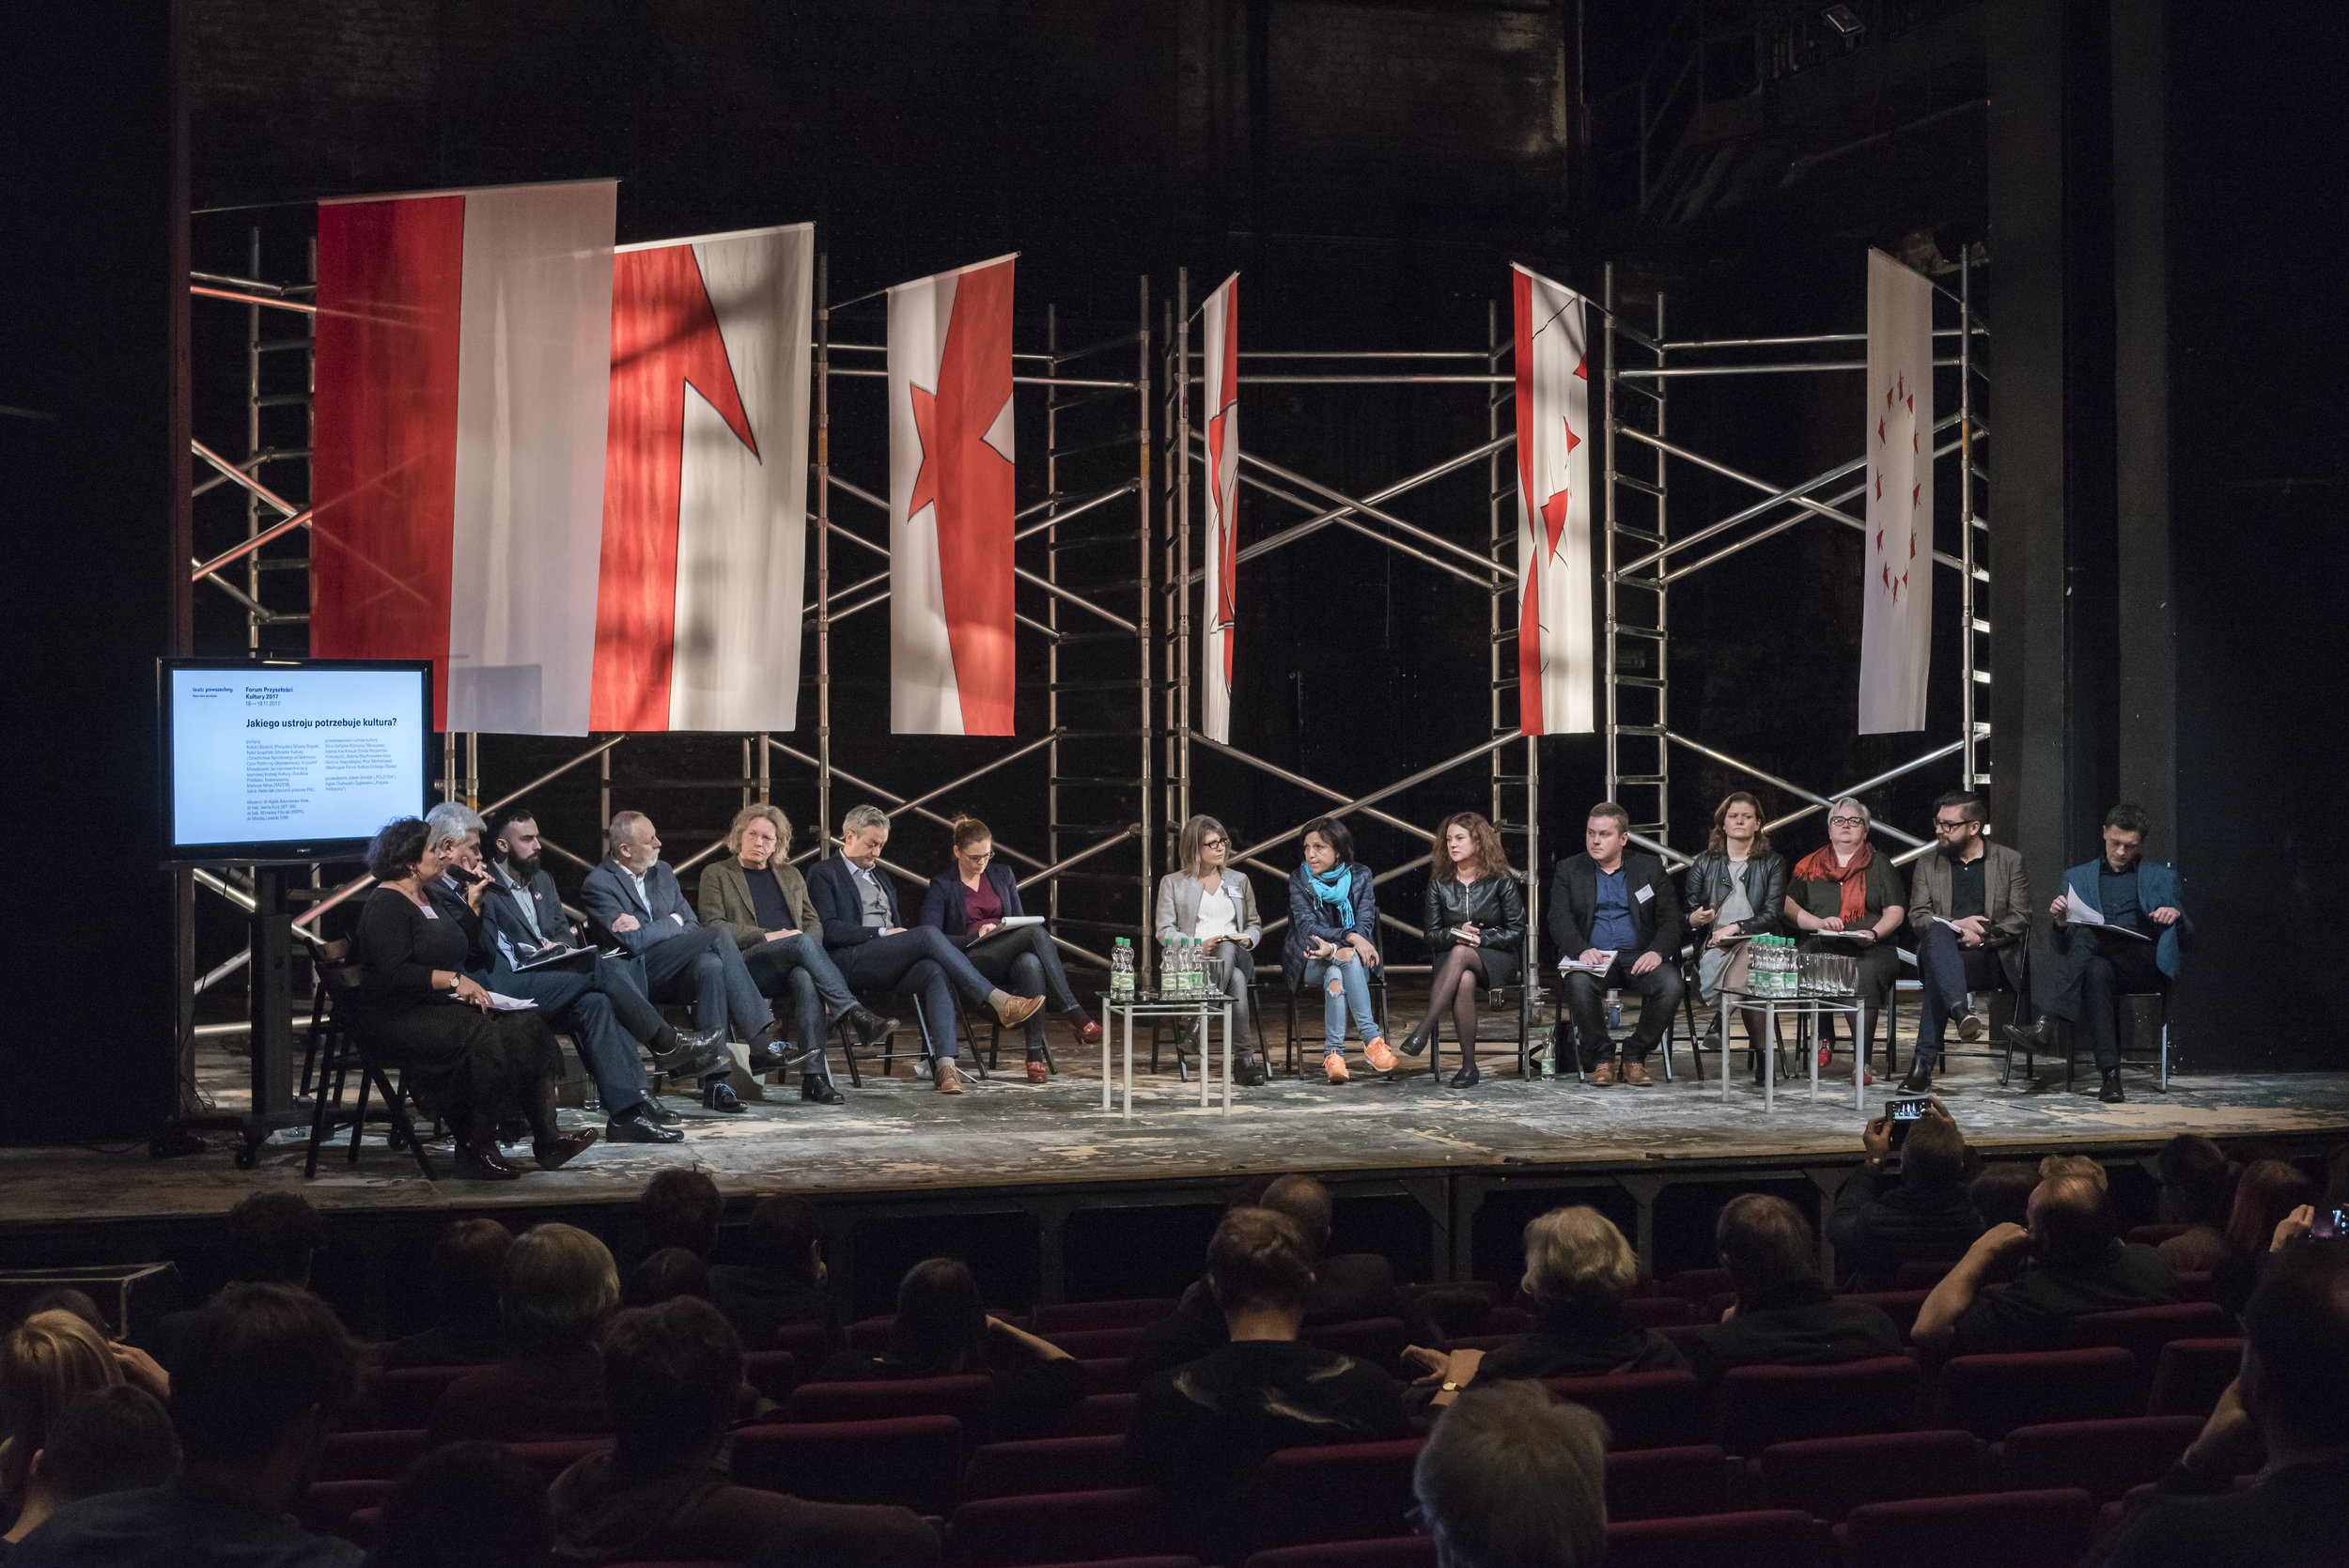 Forum for the Future of Culture. Photo by Arek Drygas.